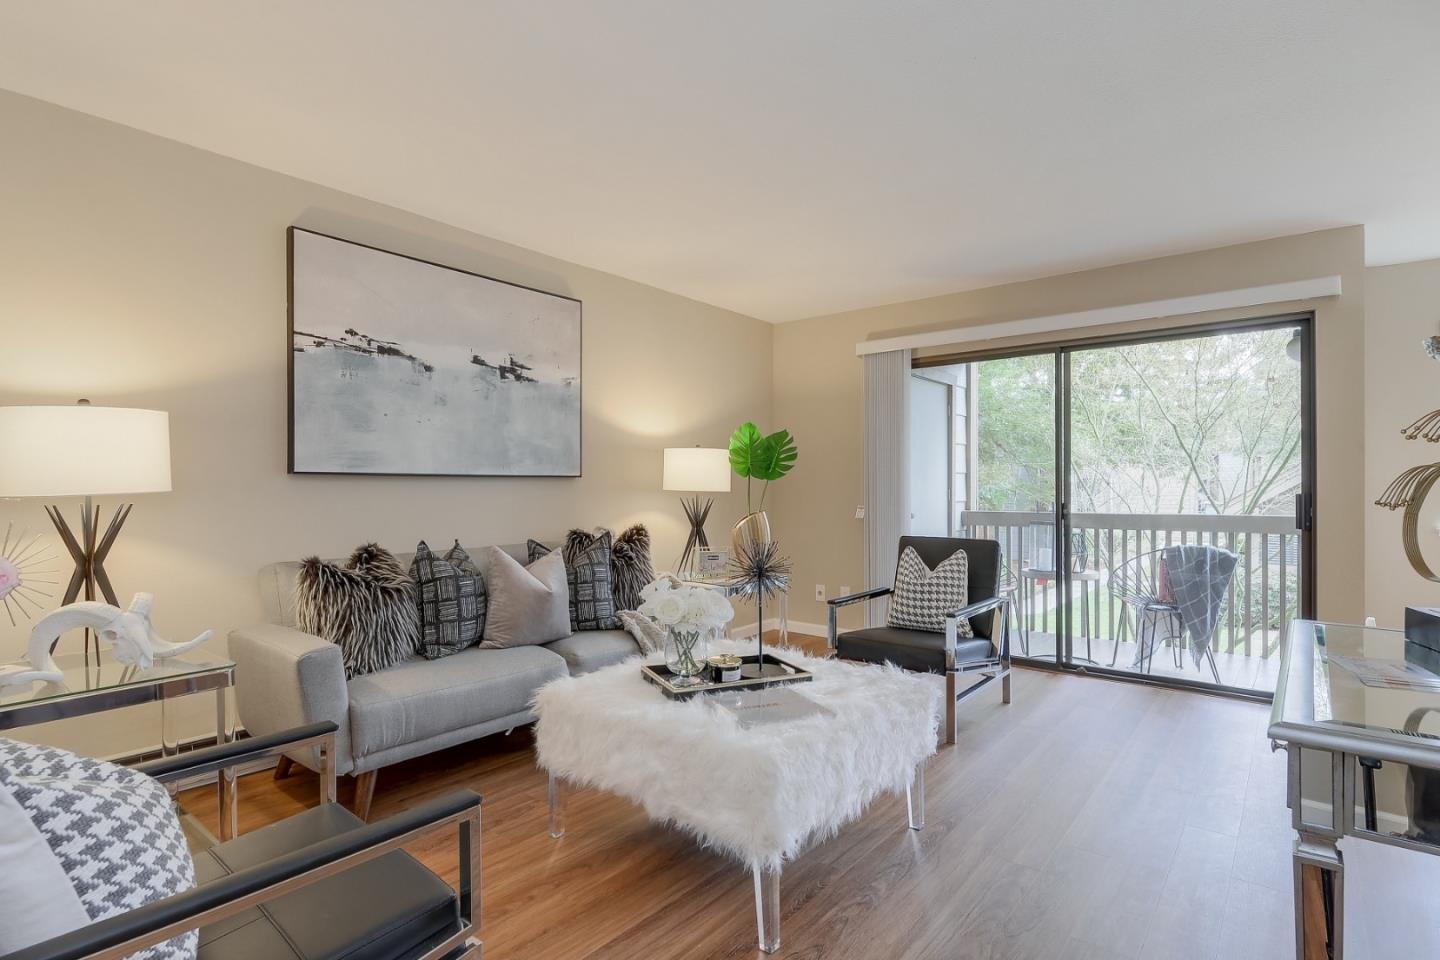 938 CLARK AVE 29, MOUNTAIN VIEW, CA 94040